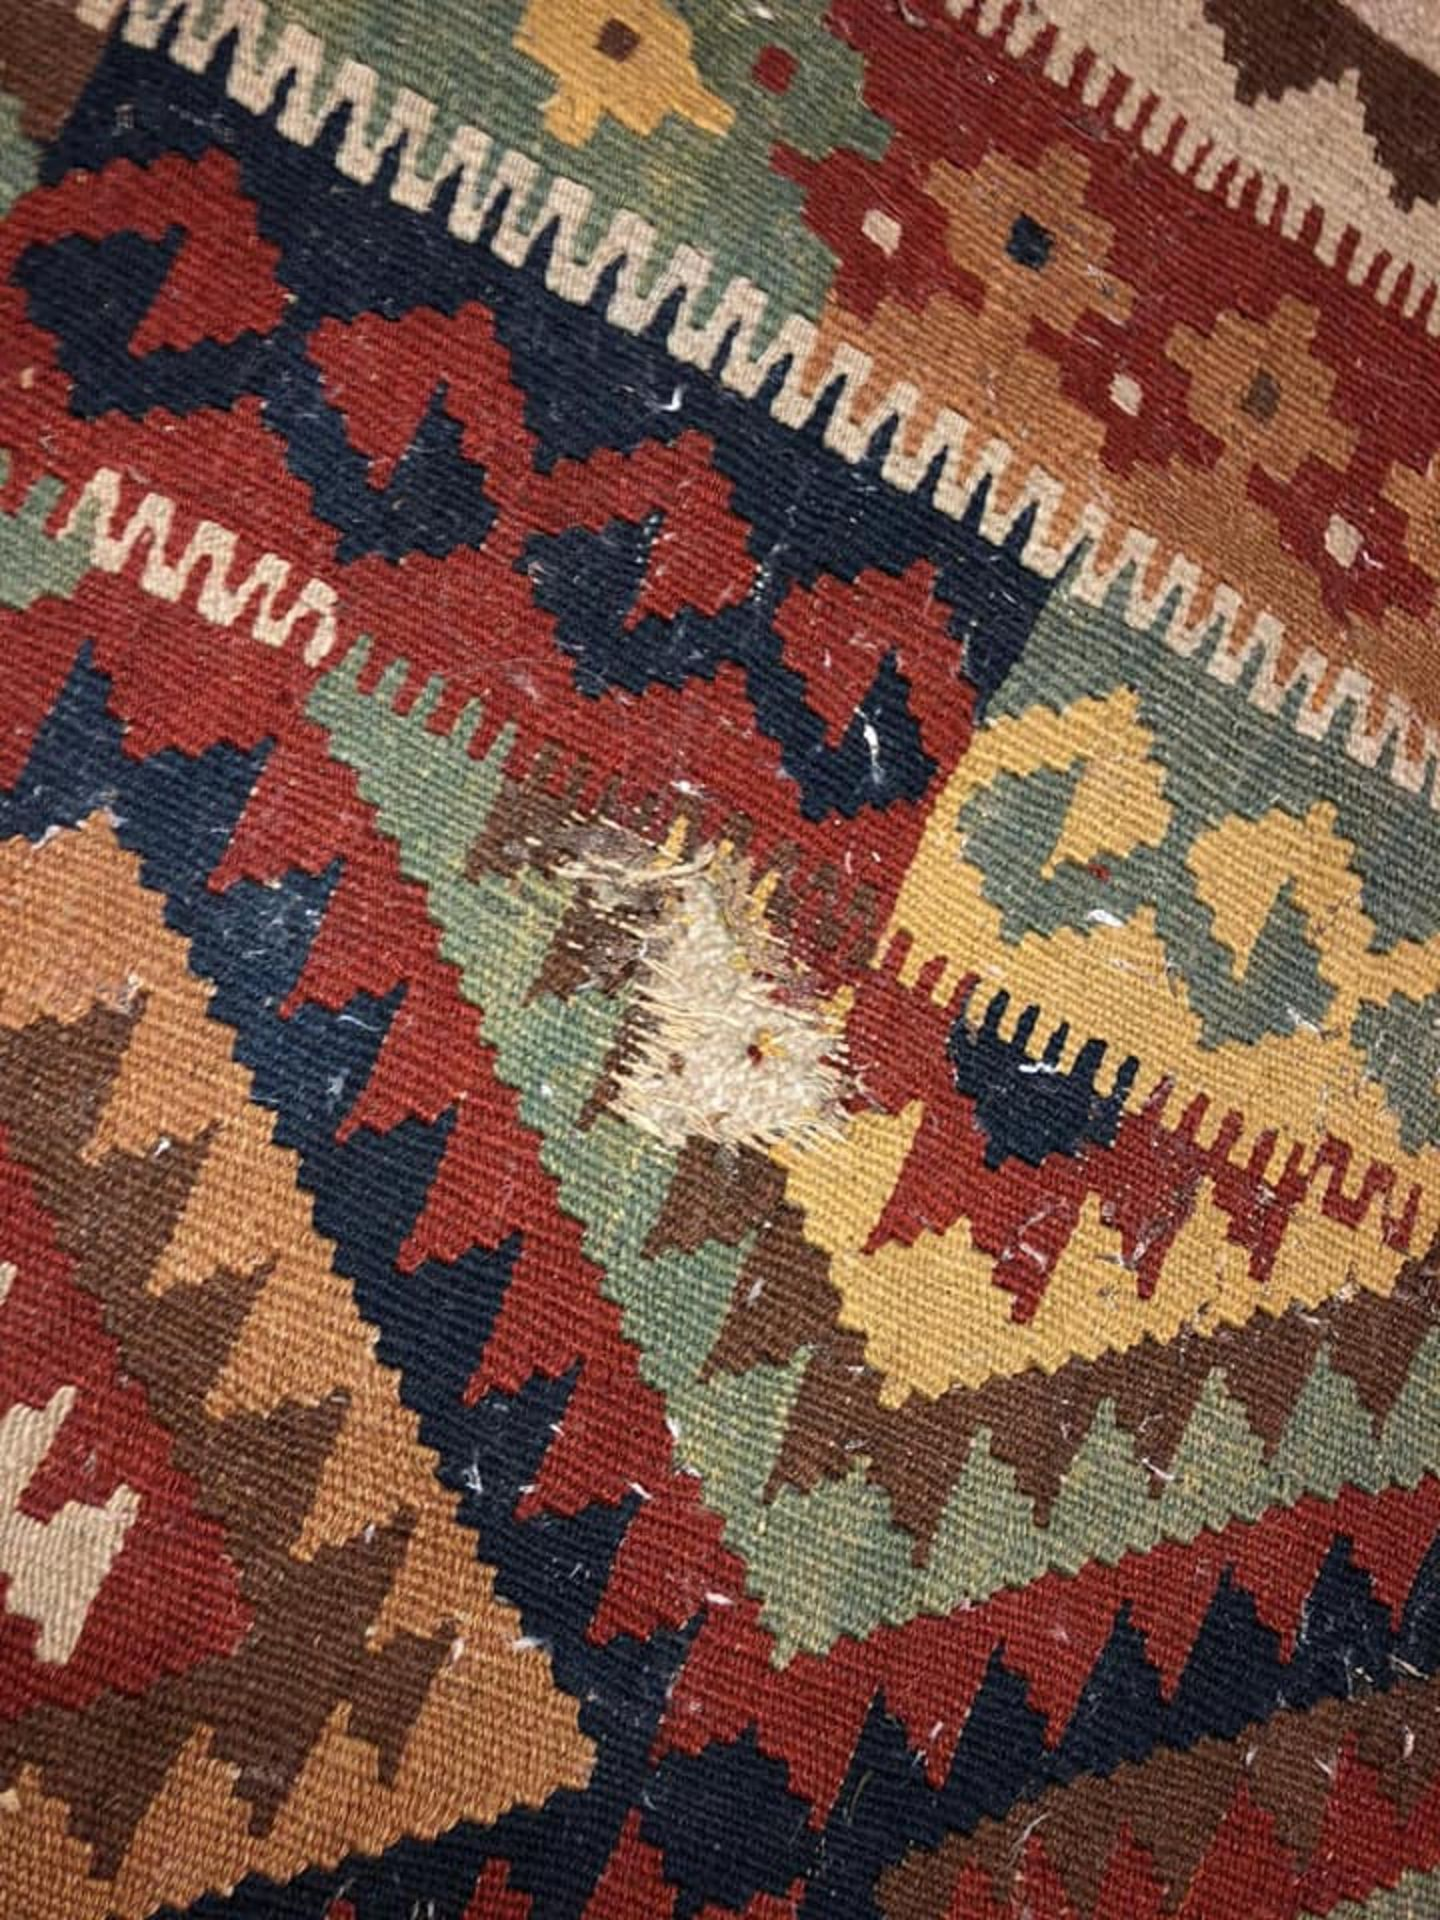 A Vintage Afghani Woven Galmori Rug 100% Short Wool Pile Handmade 180 X 100cm Complete With - Image 4 of 5